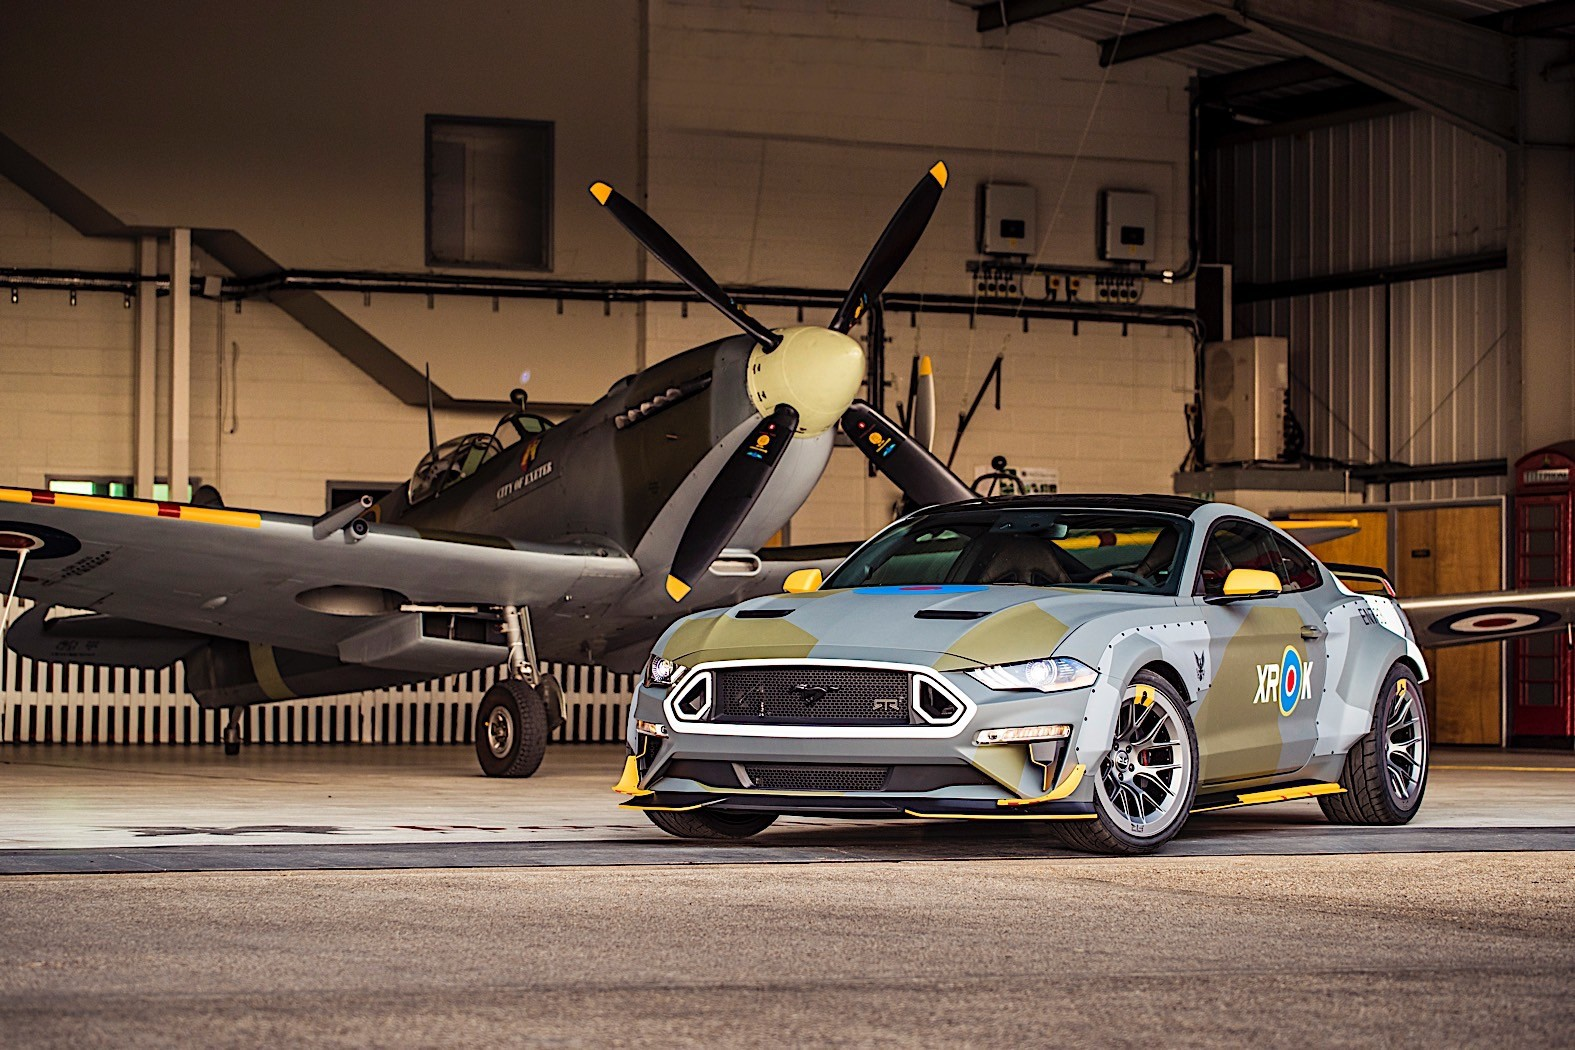 Ford eagle squadron mustang gt sold for 420000 owner gets keys